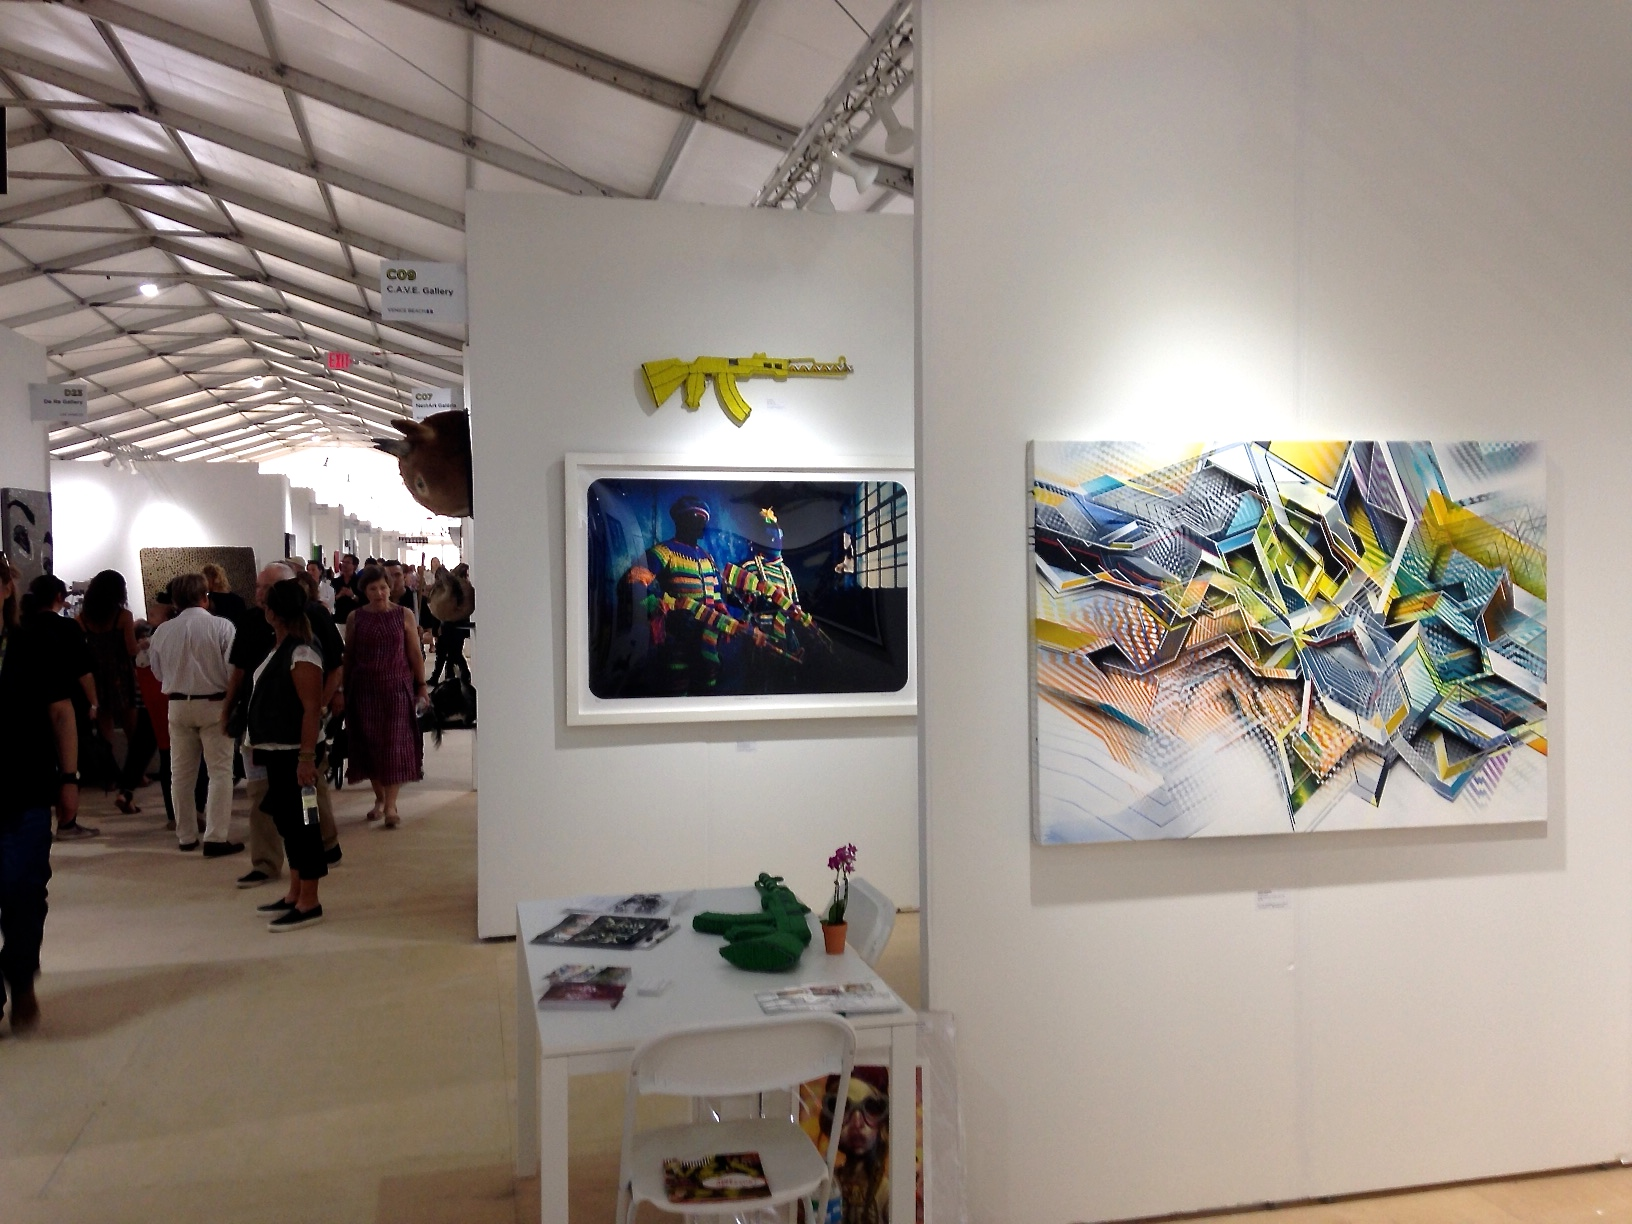 Scope art fair 2014 with Cave Gallery from Venice Beach